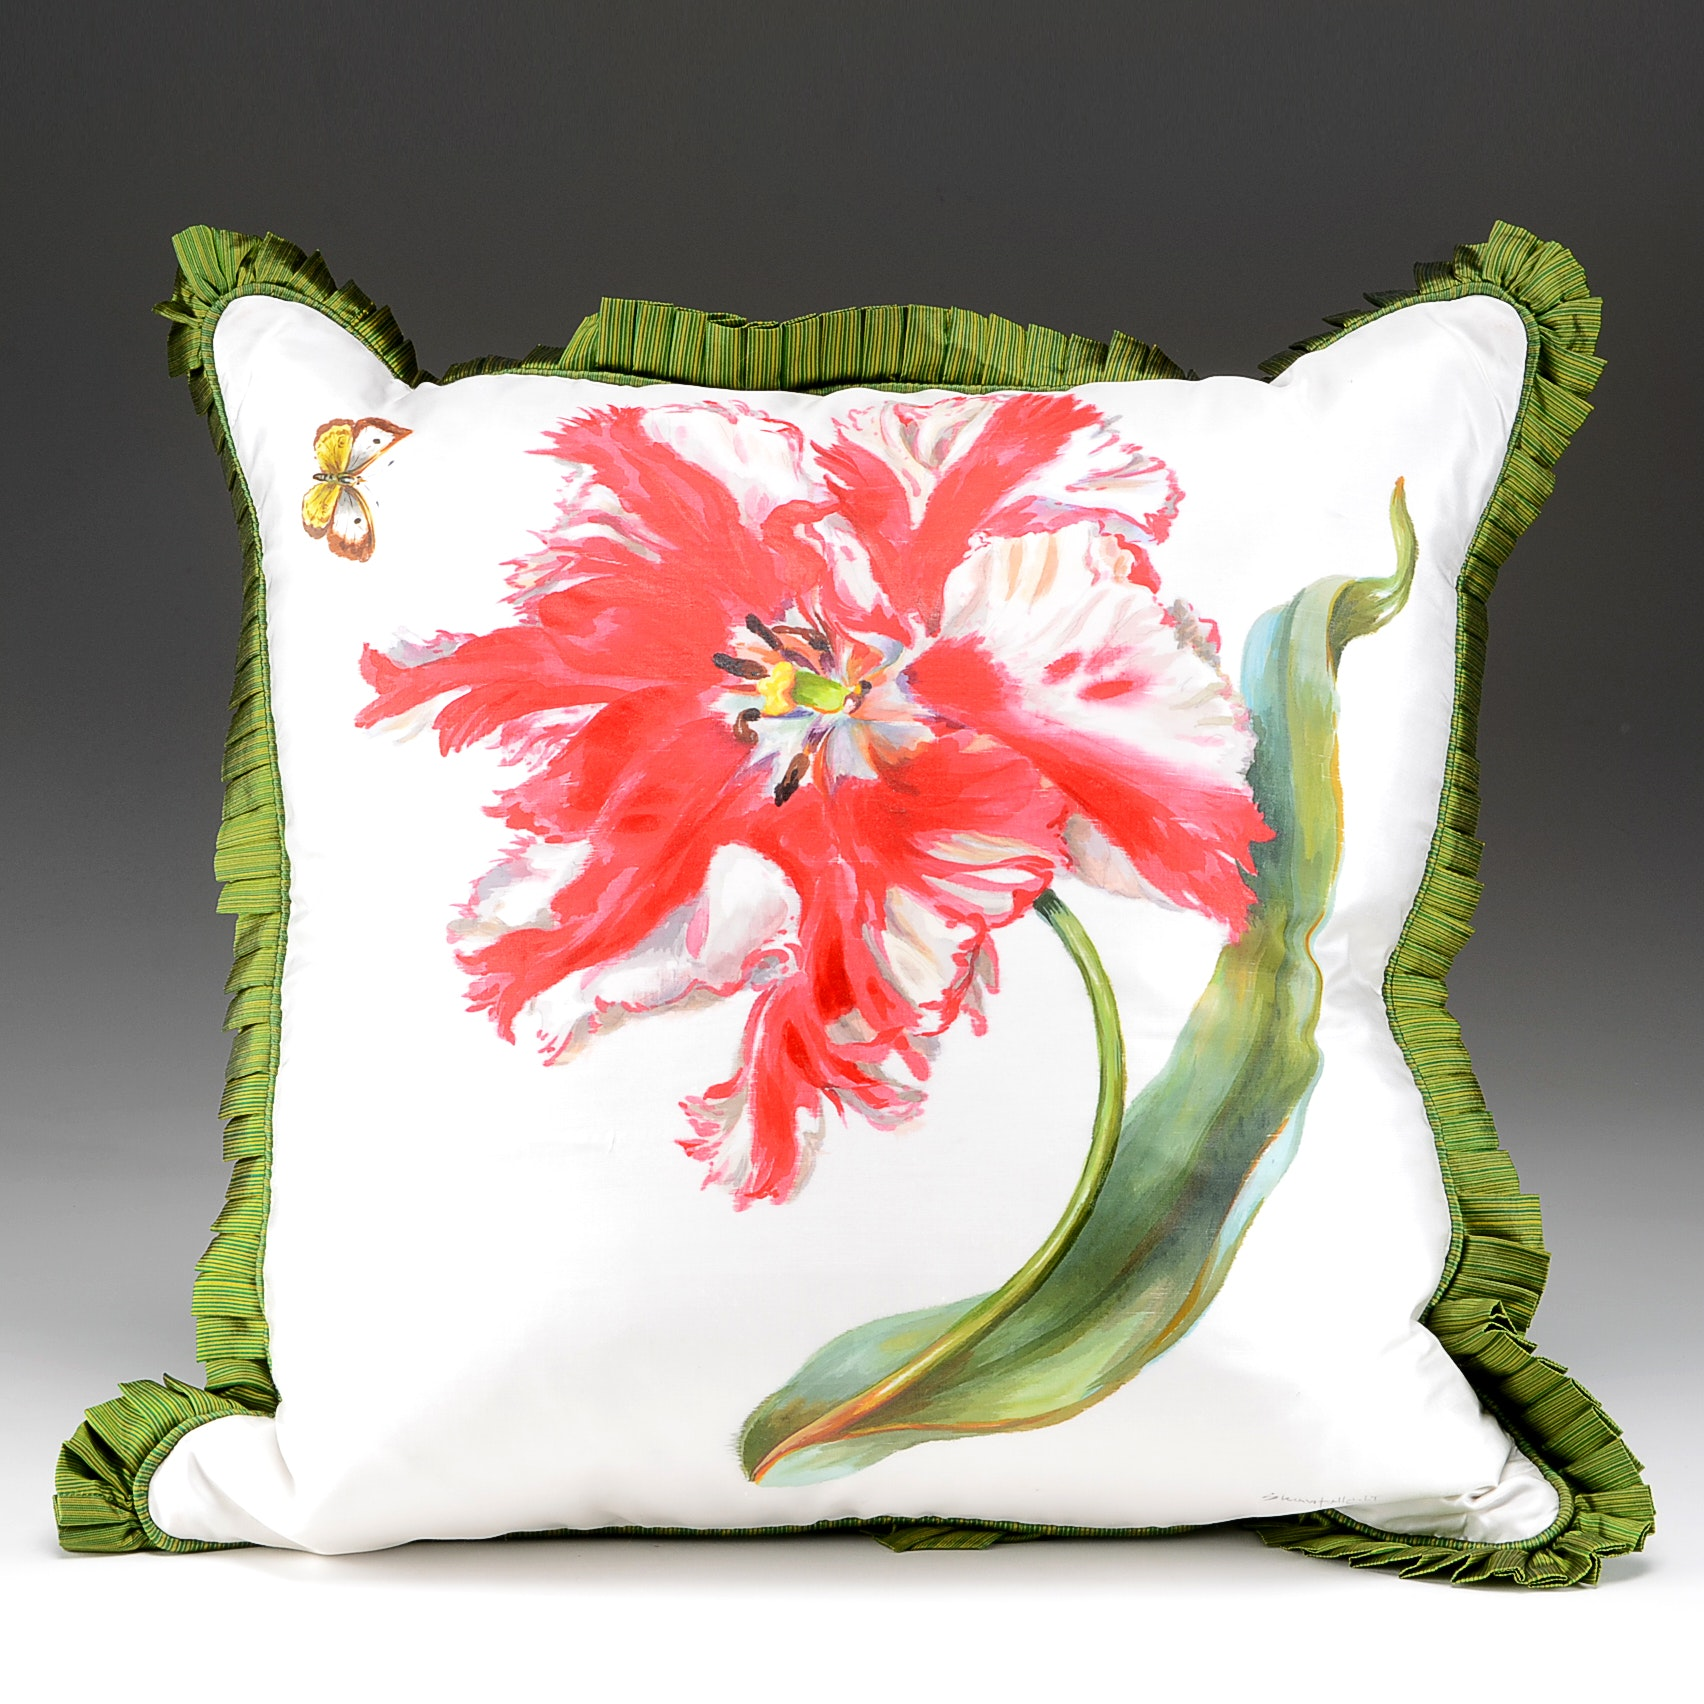 Shantelle's Studio Hand Decorated Silk Throw Pillow